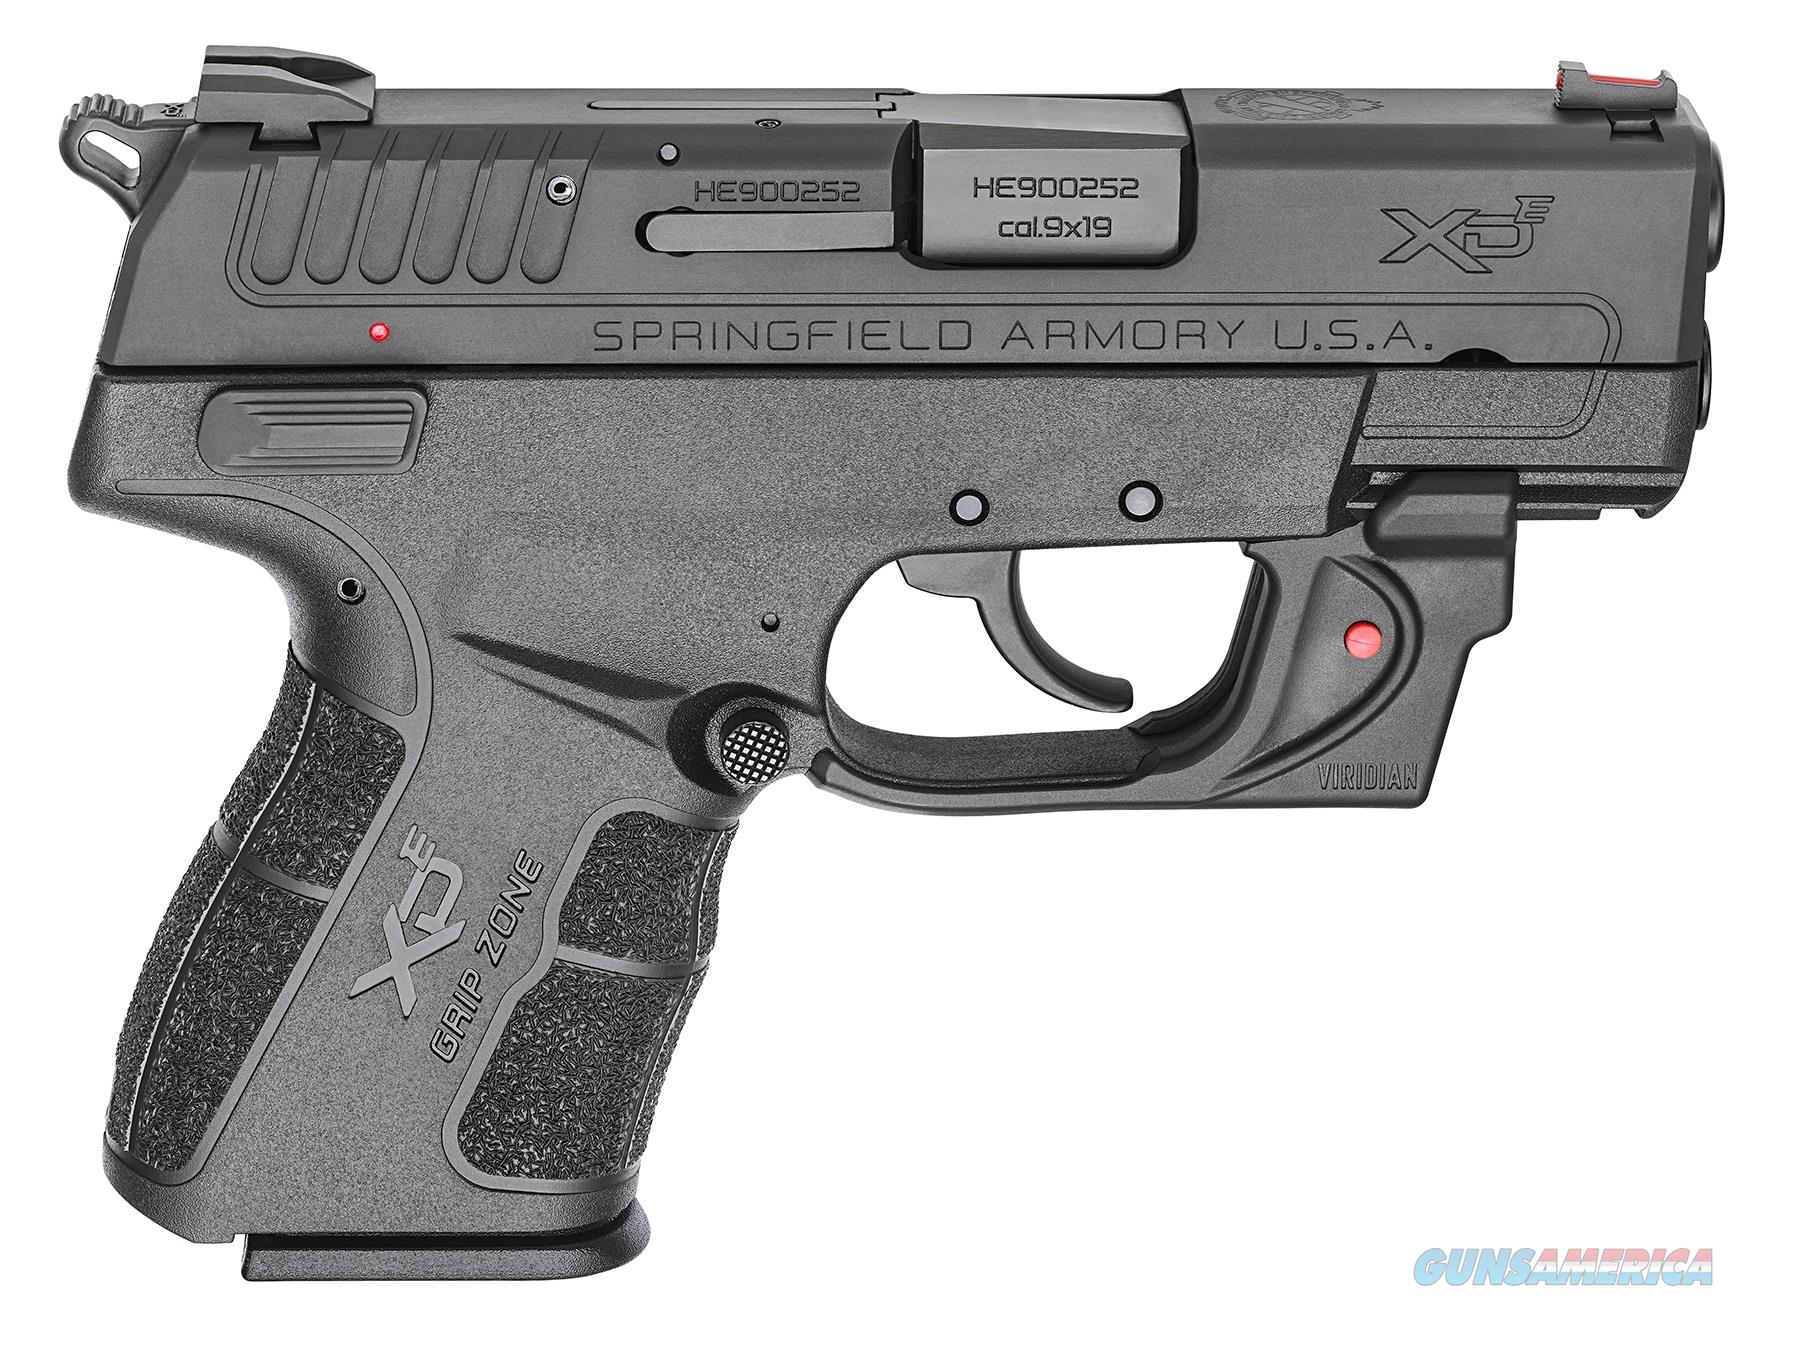 Springfield Armory XD-E 9MM BLK 3.3 9+1 RED LSR VIRIDIAN RED LASER | 2 MAGS  Guns > Pistols > Springfield Armory Pistols > XD-E